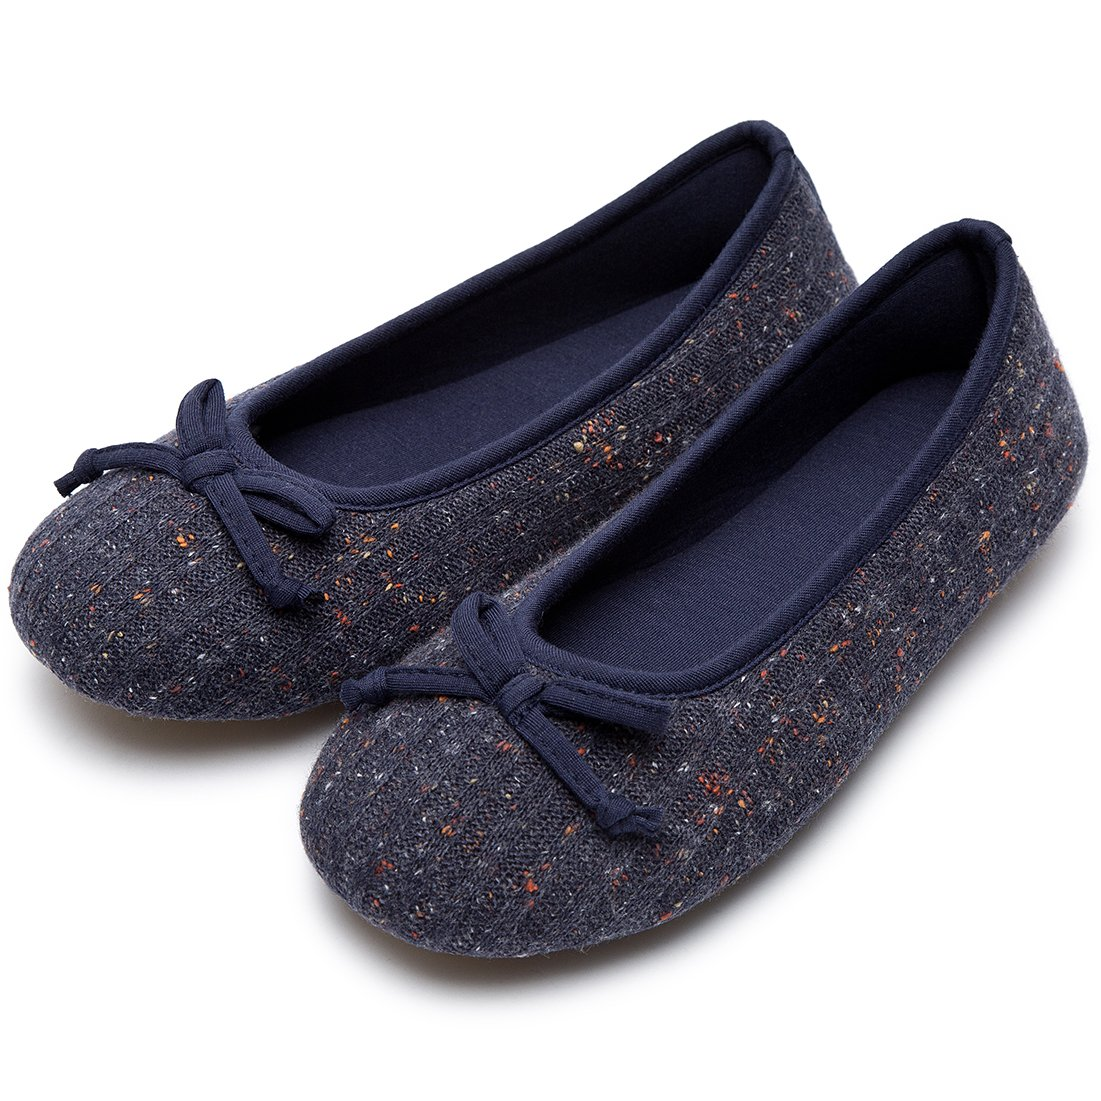 Women's Comfy Colored Knit Memory Foam Ballerina House Slippers Shoes with Anti-Slip Rubber Sole (Small/5-6 B(M) US, Navy Blue)